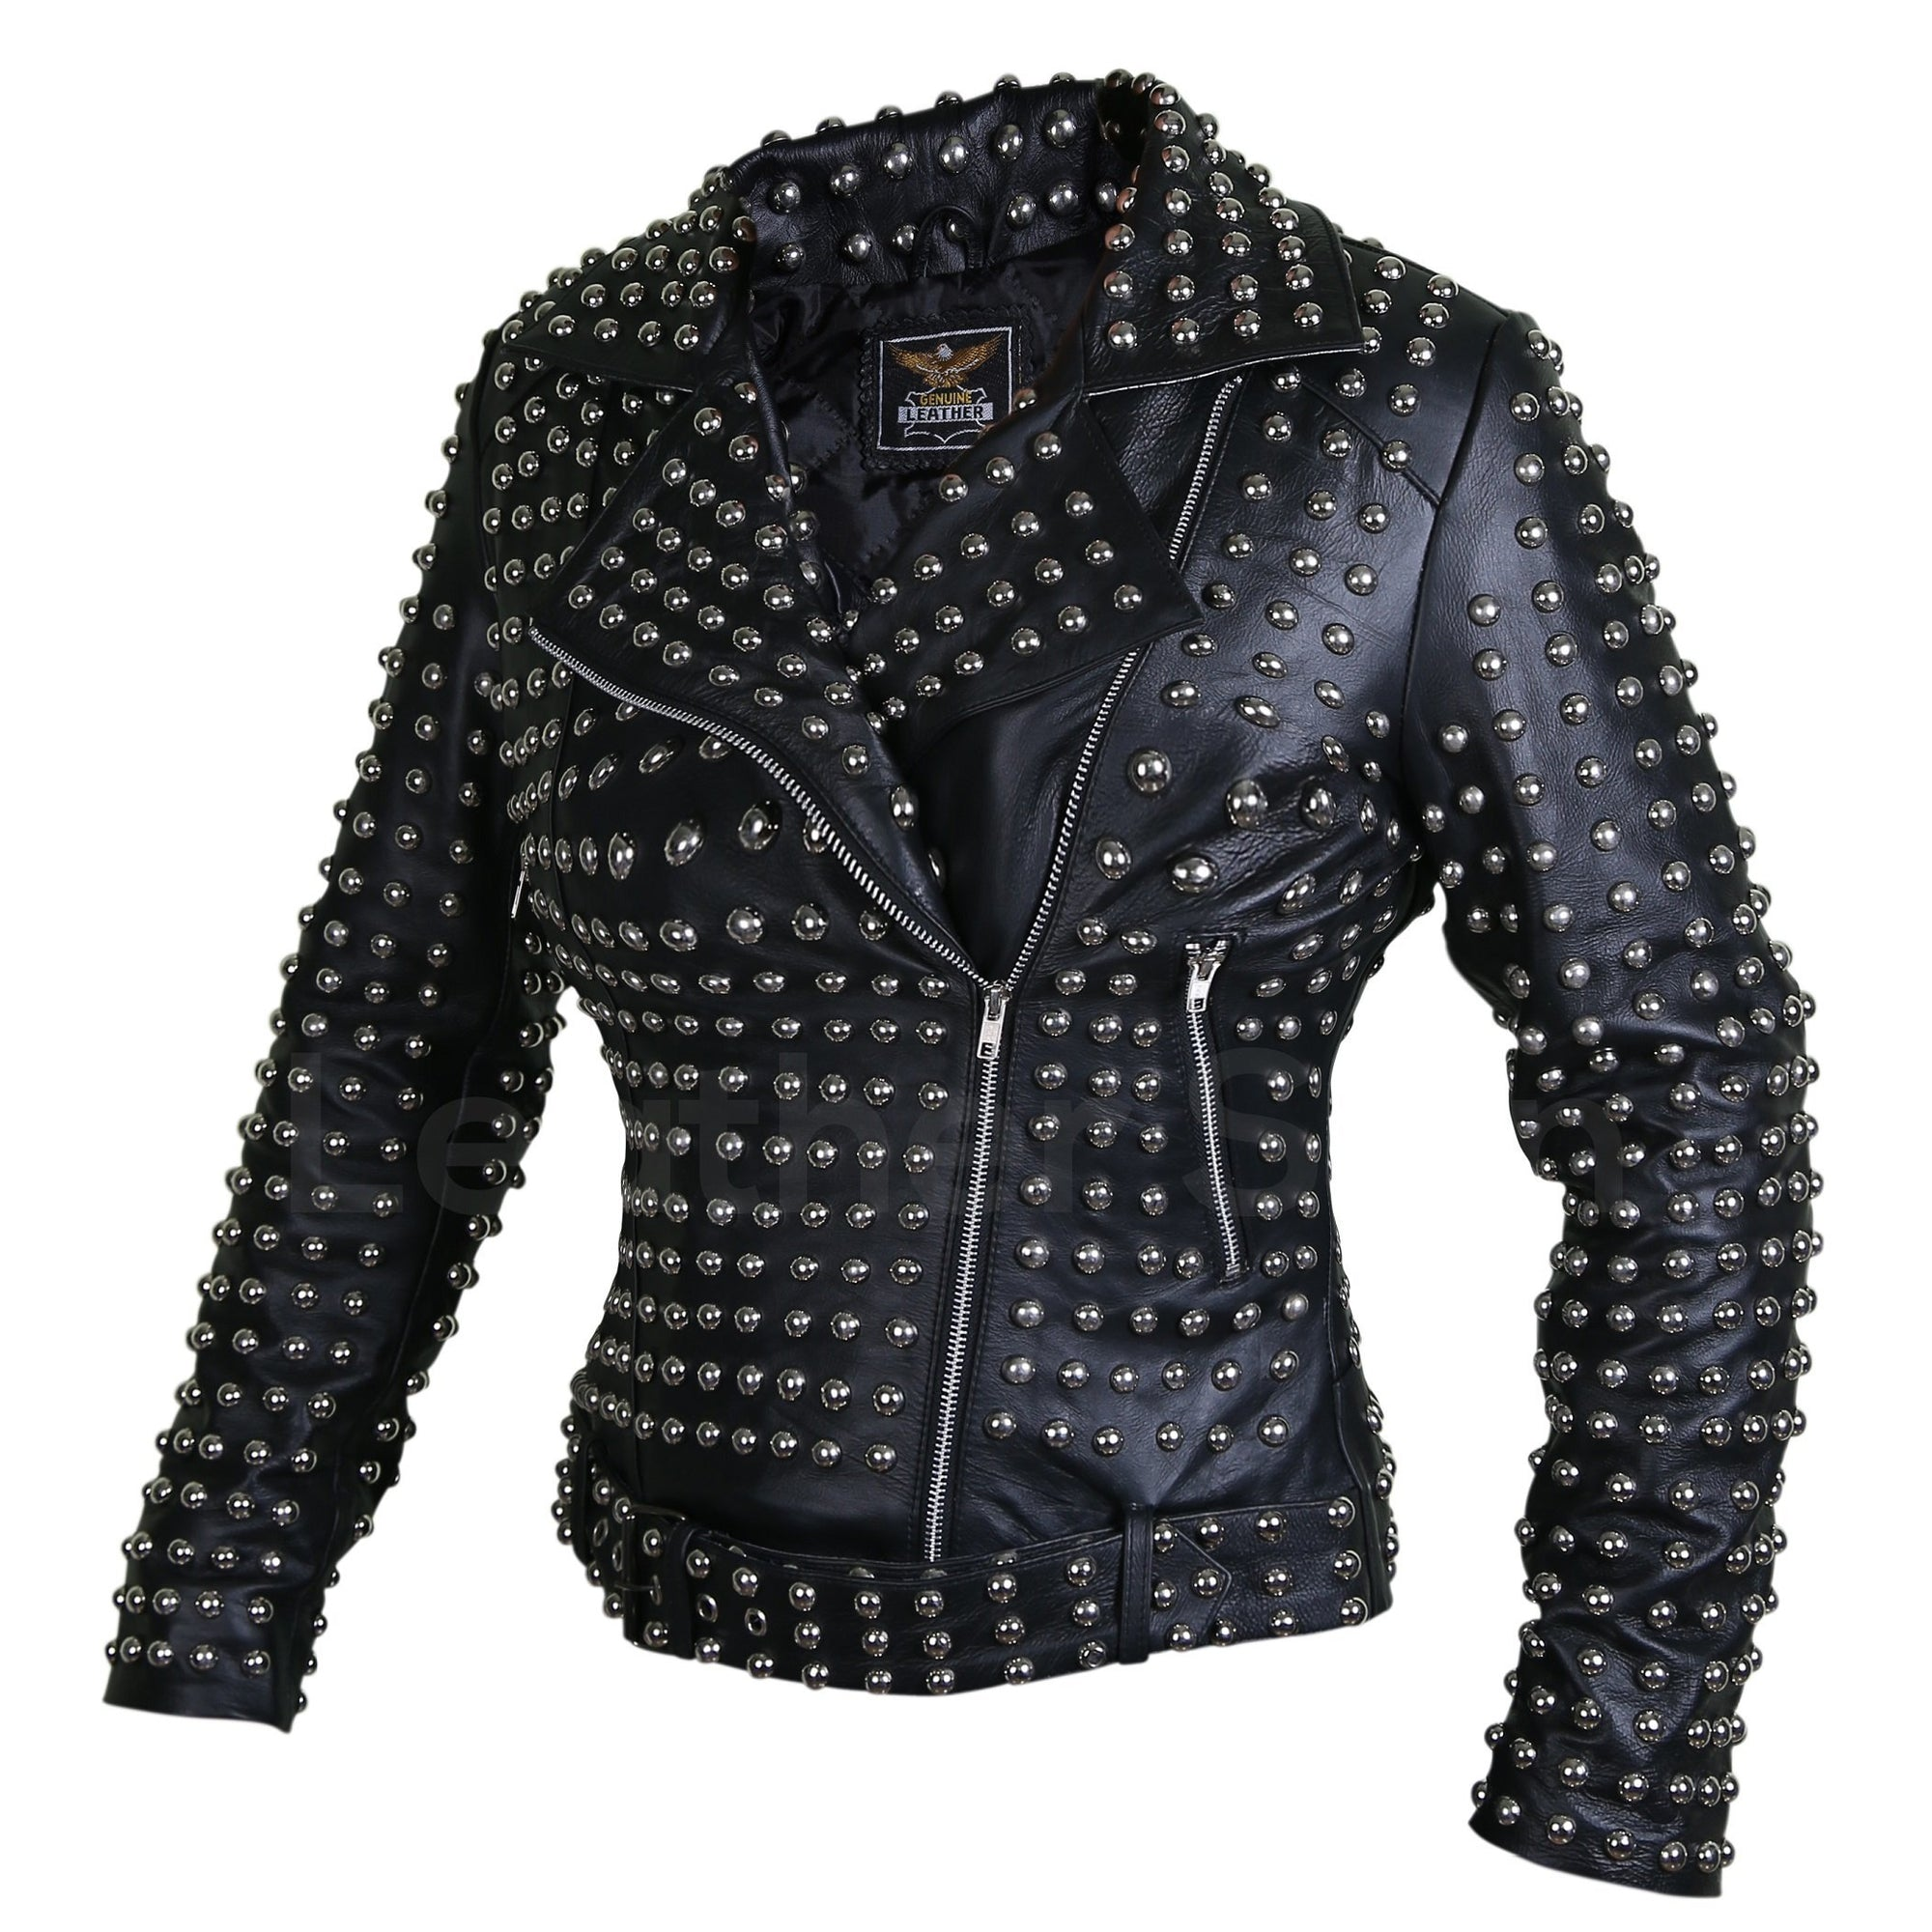 Women Black Brando Belted Round Cap Studded Leather Jacket